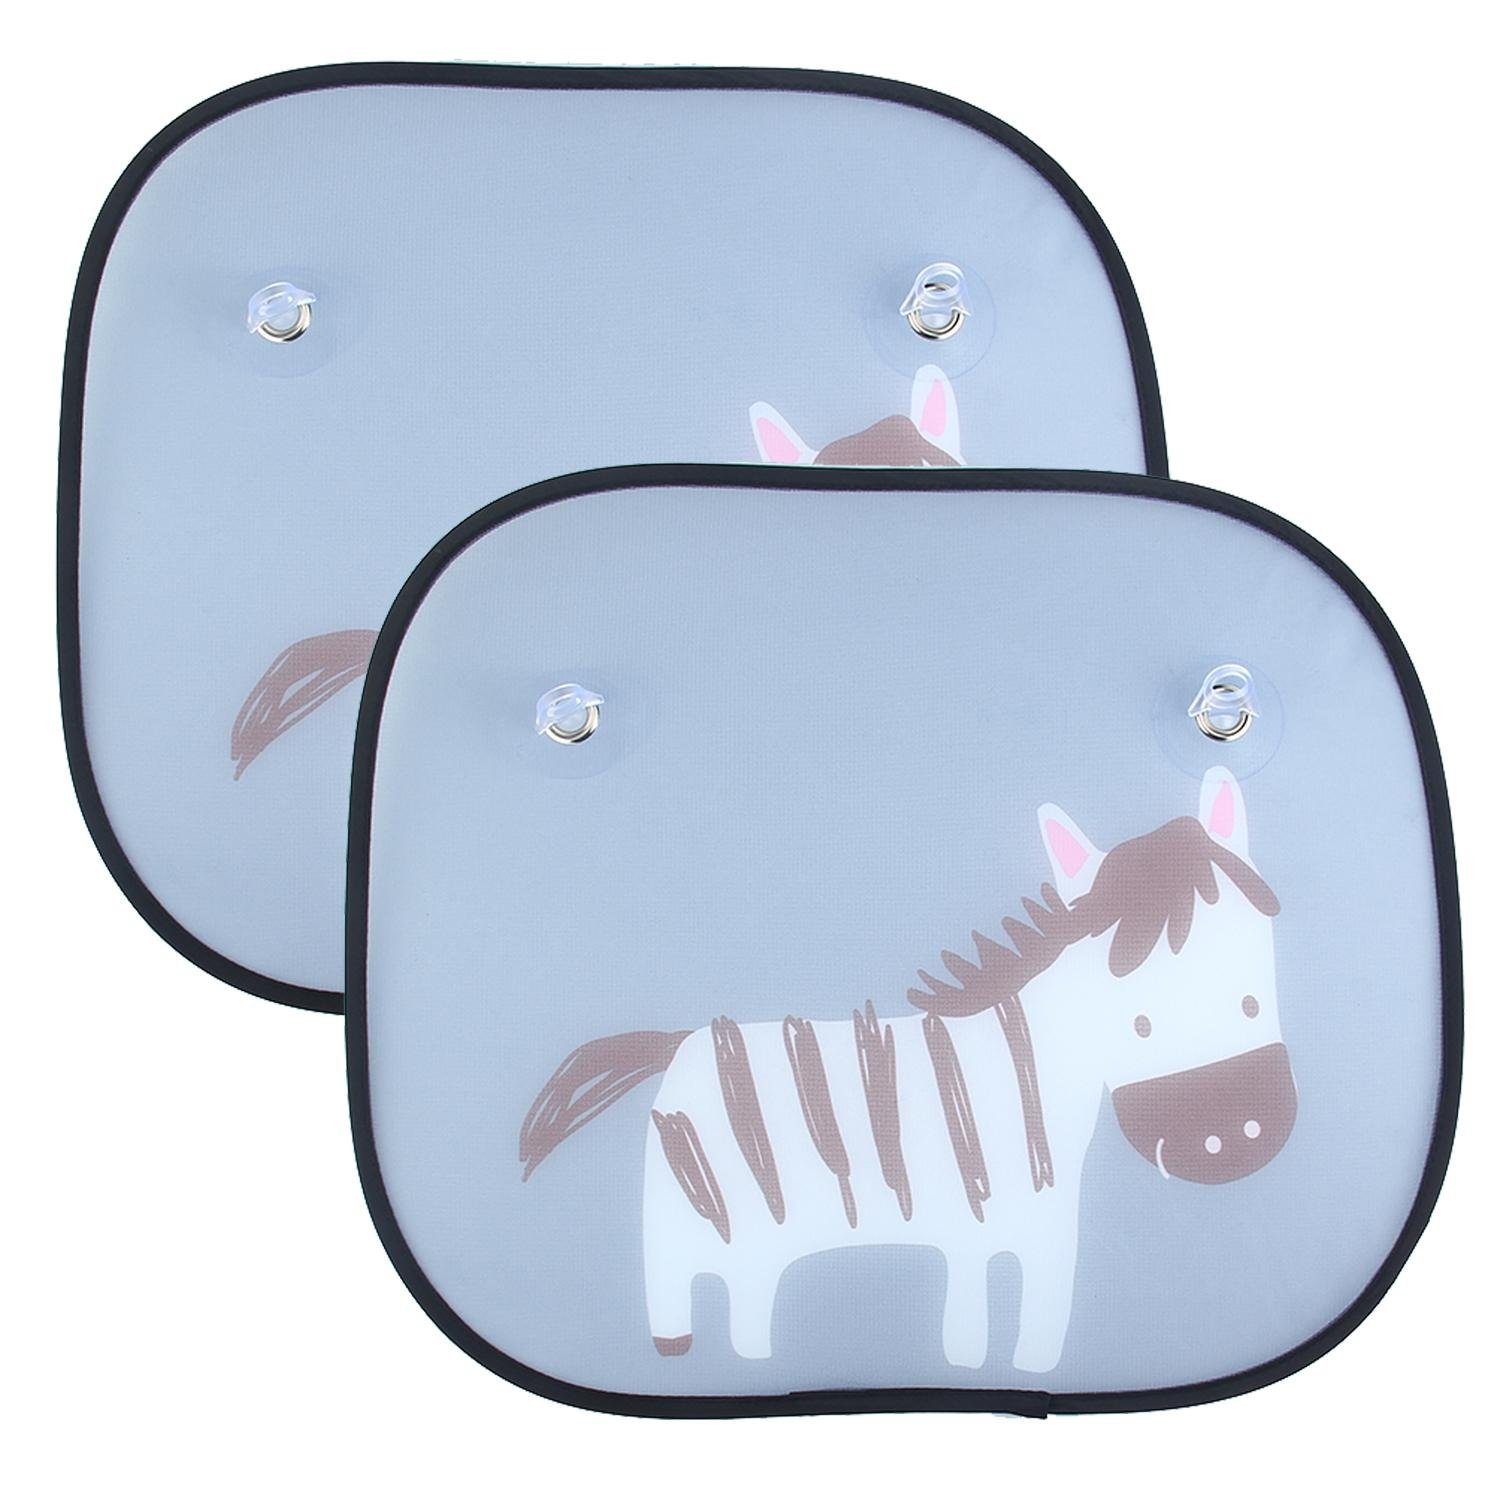 2pcs Car Window Sun Shades - KOBWA Universal Cute Animal Design Easy Installation Sun Visors with Suction Cups Blocks Harmful UV Rays Sun Glare Heat for Babies, Kids, Pets